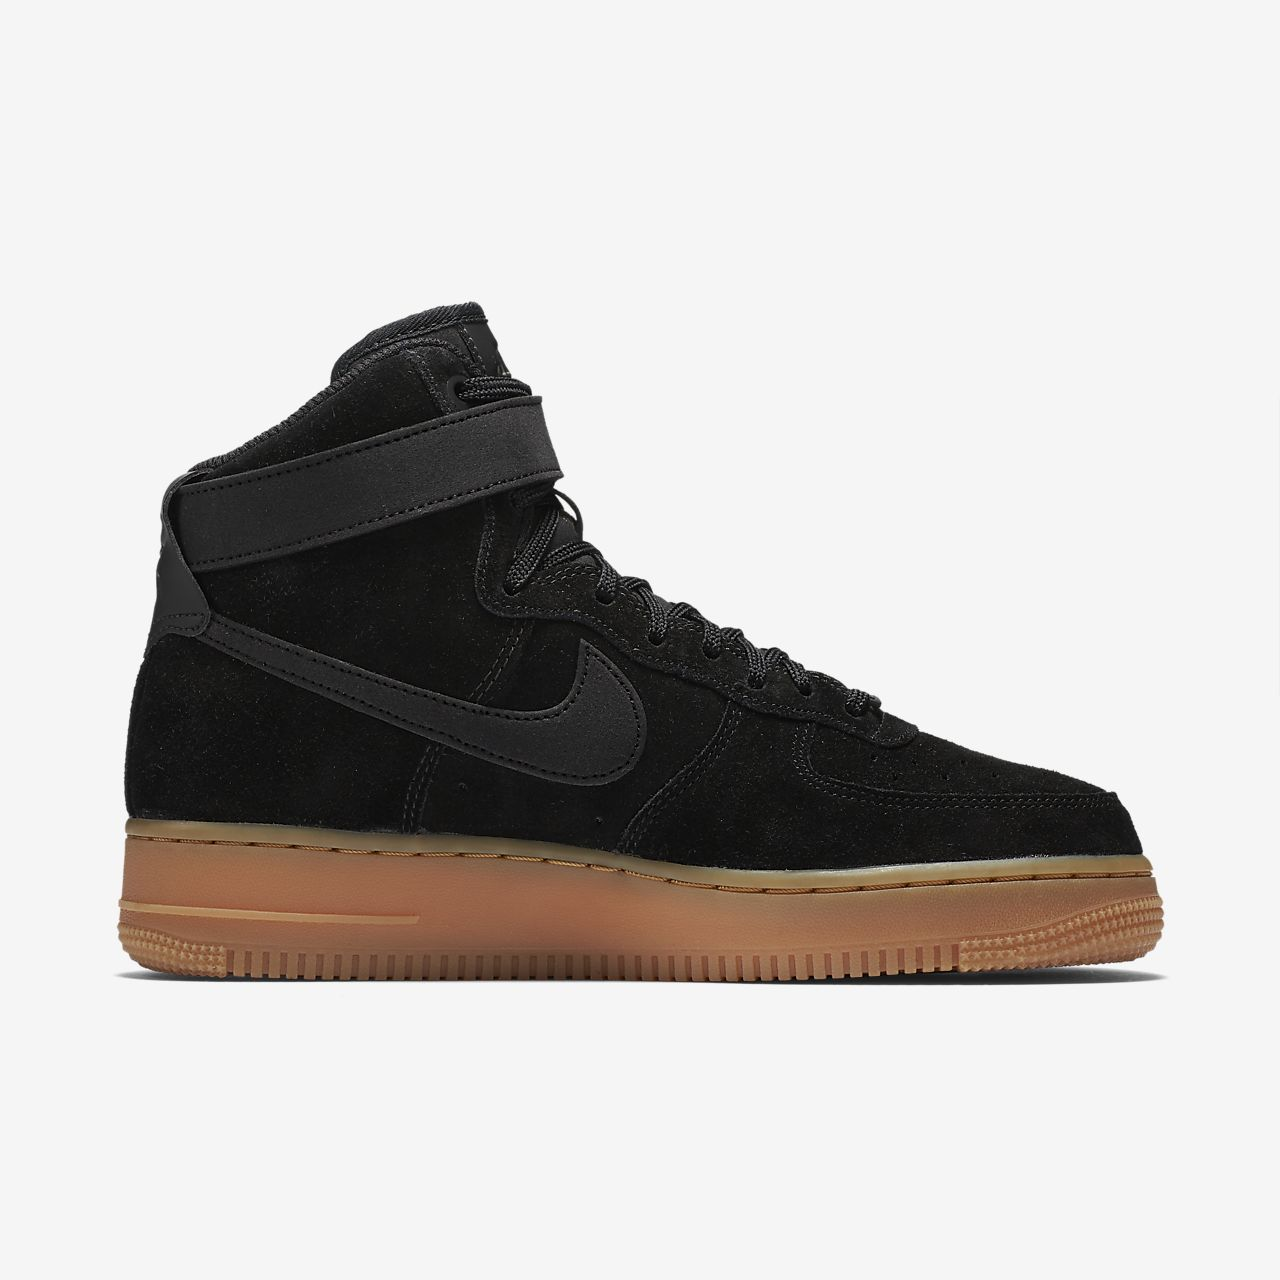 nike air force 1 se women's nz